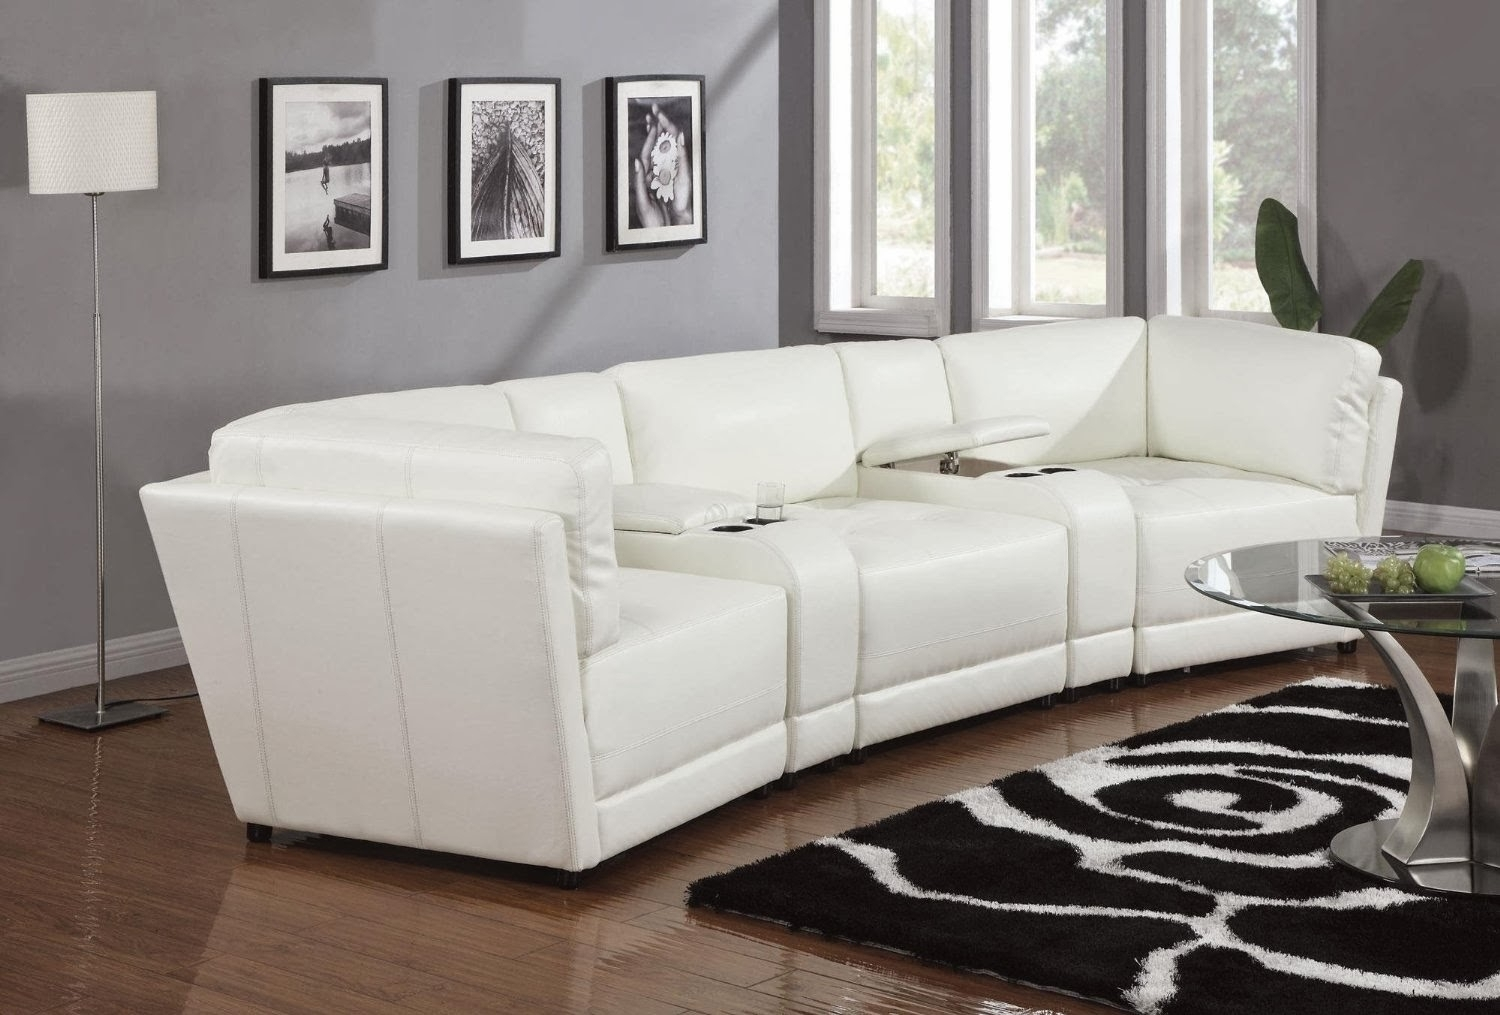 Sectional Sofas Vancouver Bc | Conceptstructuresllc In Sectional Sofas At Bc Canada (Image 8 of 10)